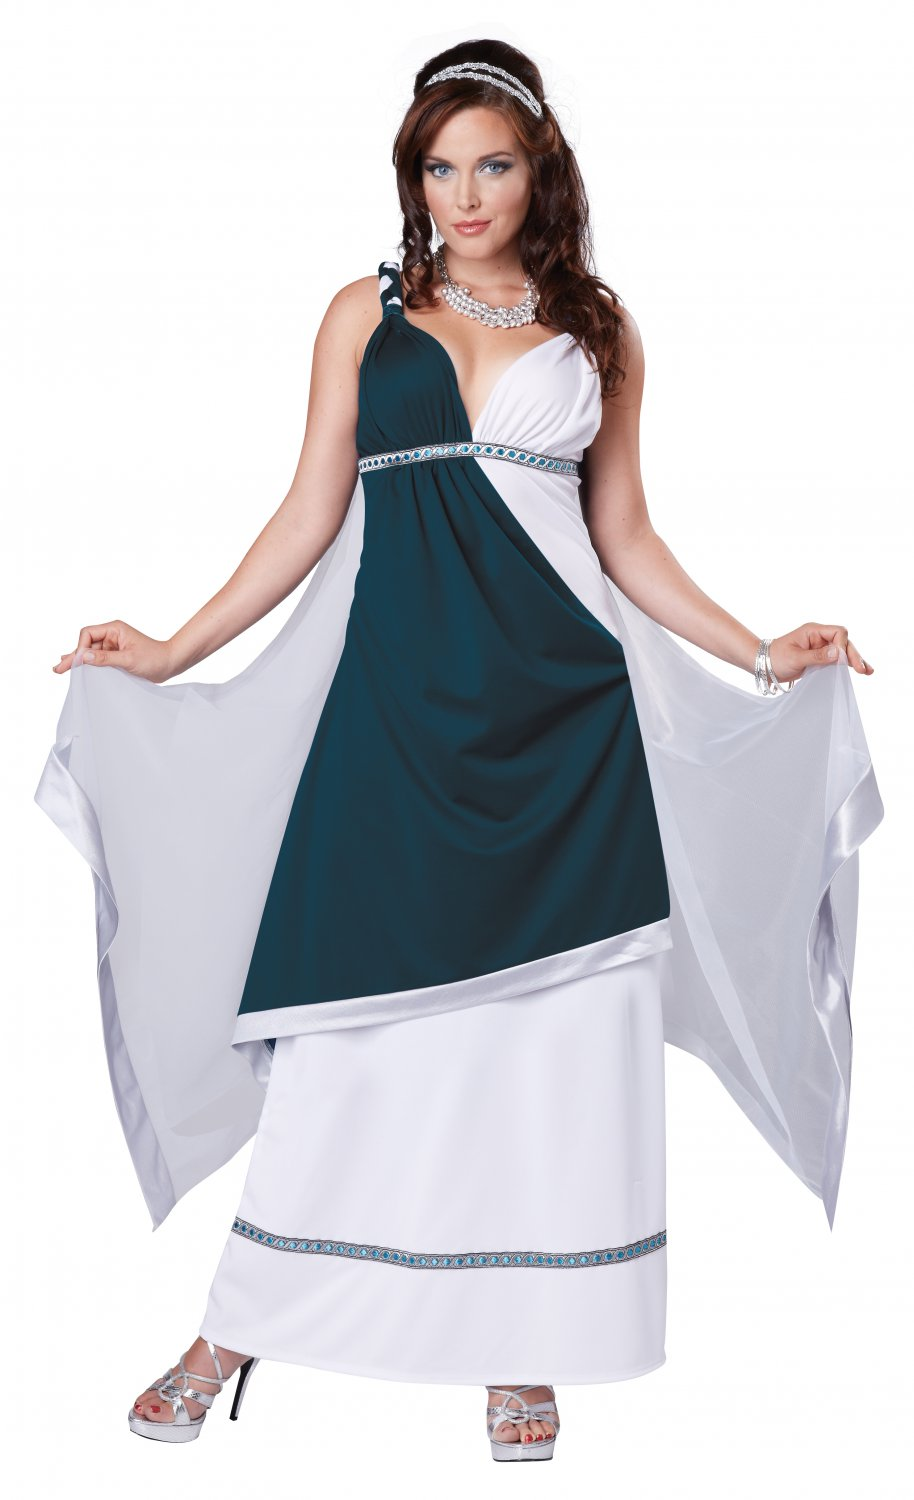 300 Greek Roman Beauty Toga Adult Costume Size: X-Small #01361